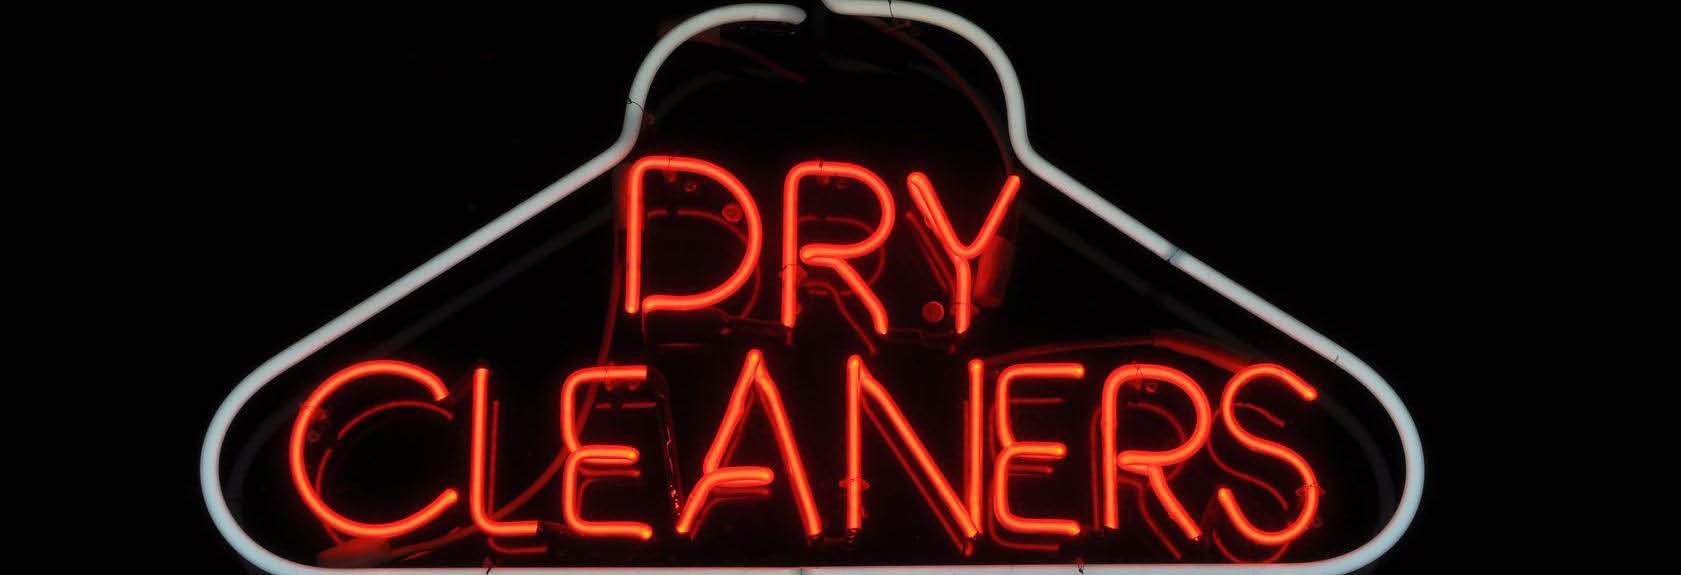 ford cleaners in laguna niguel, ca dry cleaning coupons near me